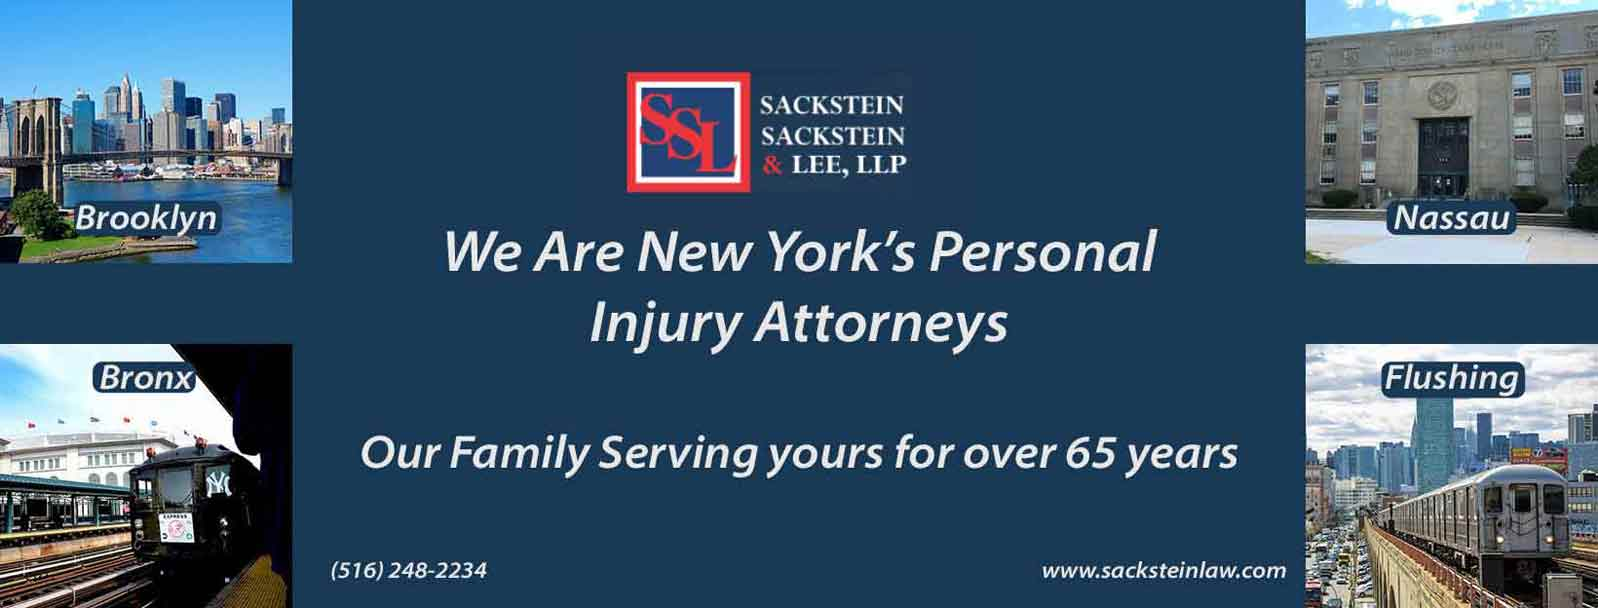 Sackstein Sackstein & Lee, LLP reviews | Personal Injury Law at 1140 Franklin Ave - Garden City NY